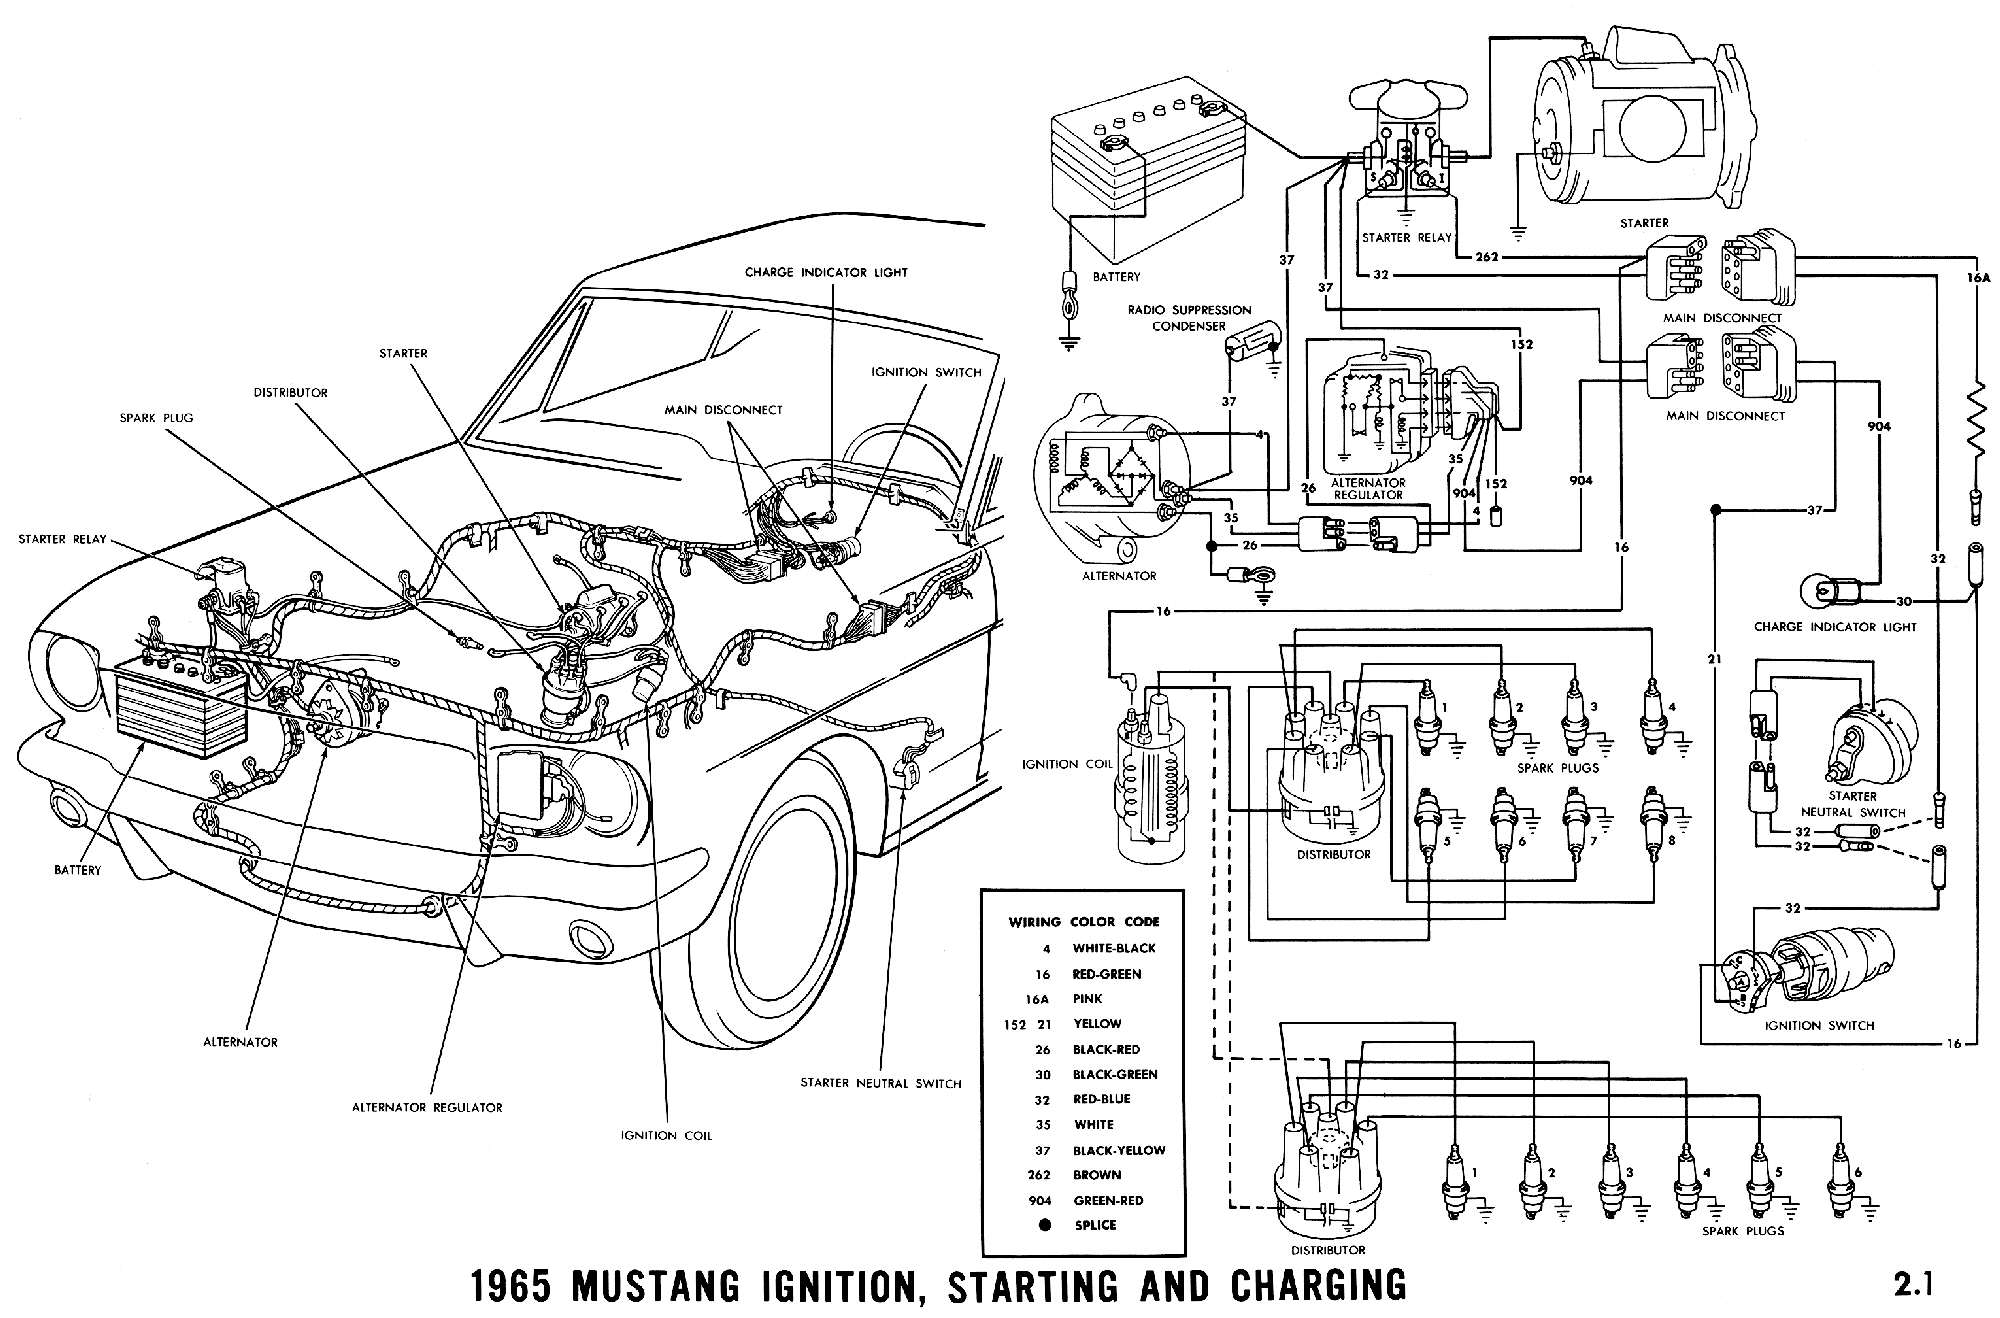 1965 mustang wiring diagrams average joe restoration rh  averagejoerestoration com 65 mustang voltage regulator wiring diagram